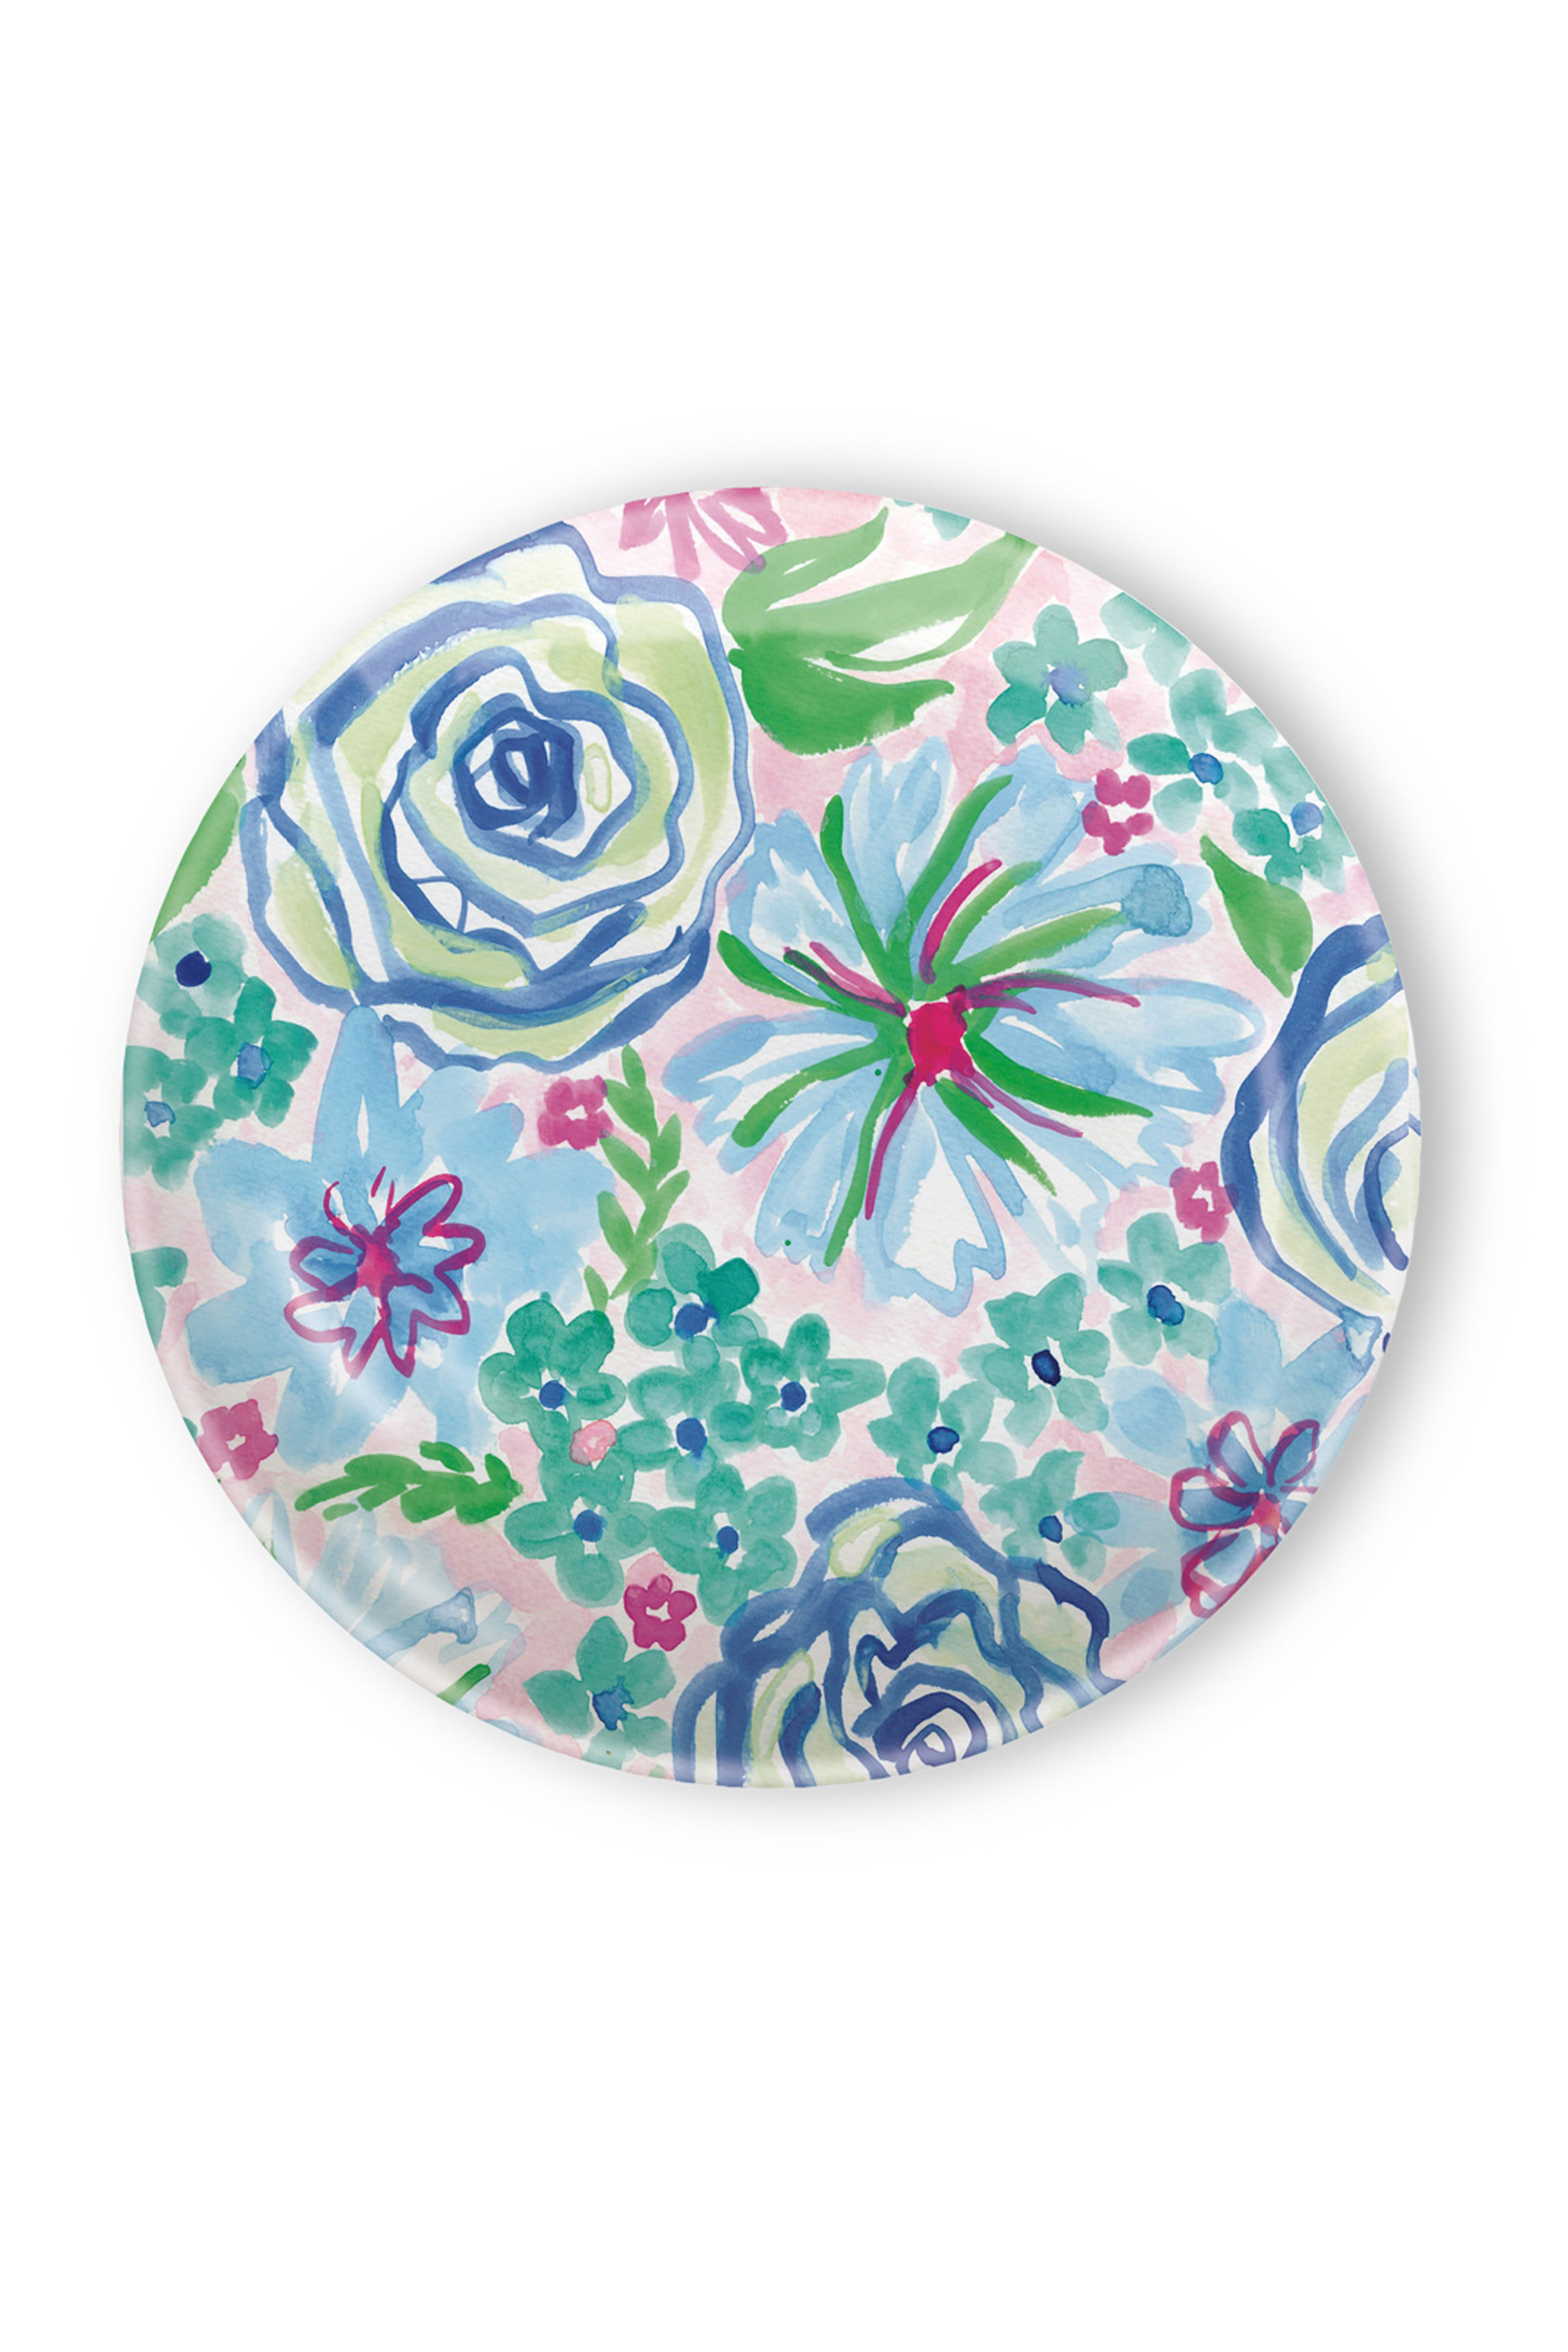 Boston International Spring Garden Salad plate